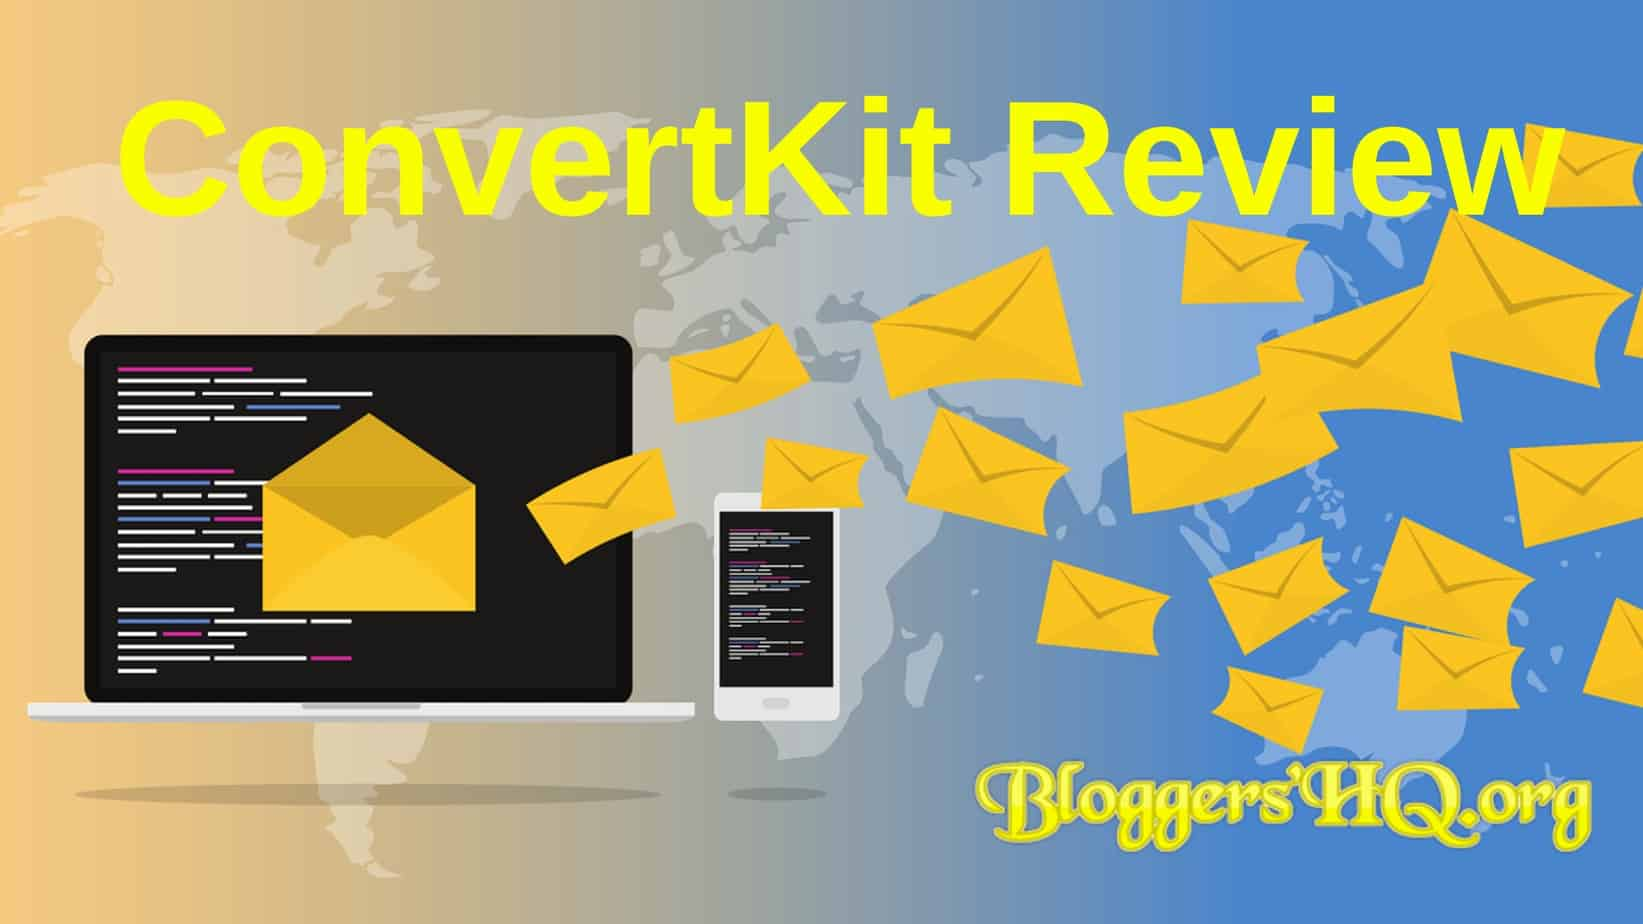 Buy Convertkit Voucher Code Printables 10 Off